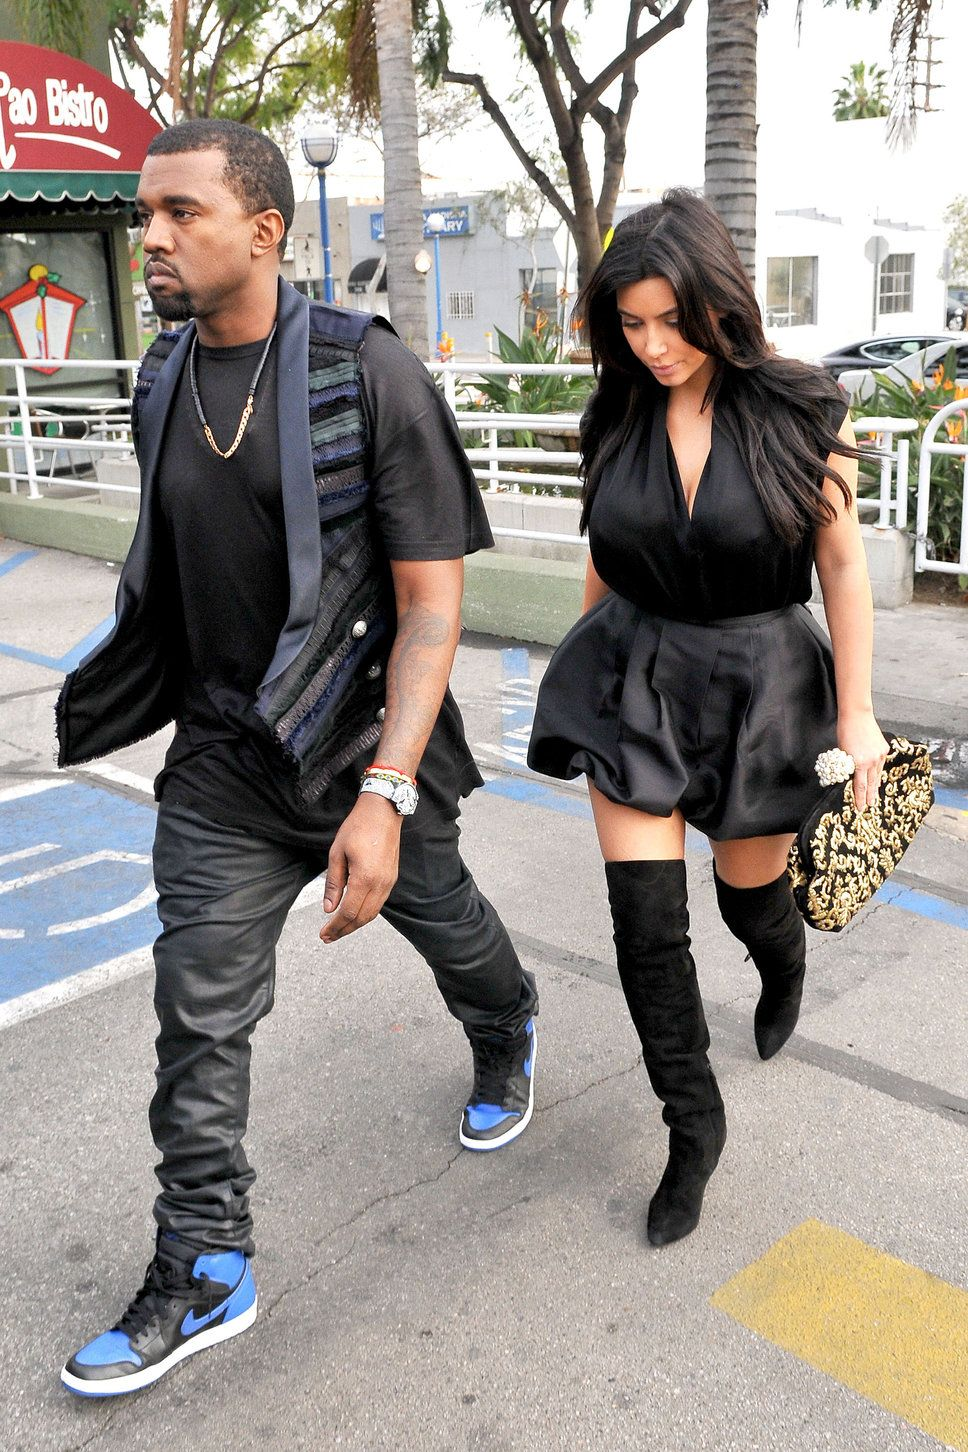 Kanye West And Kim Kardashian Pregnant Baby 2013 Confirmed Black Dress Black Boots Mom Dad Kanye West And Kim Celebrity Sneakers Kim Kardashian